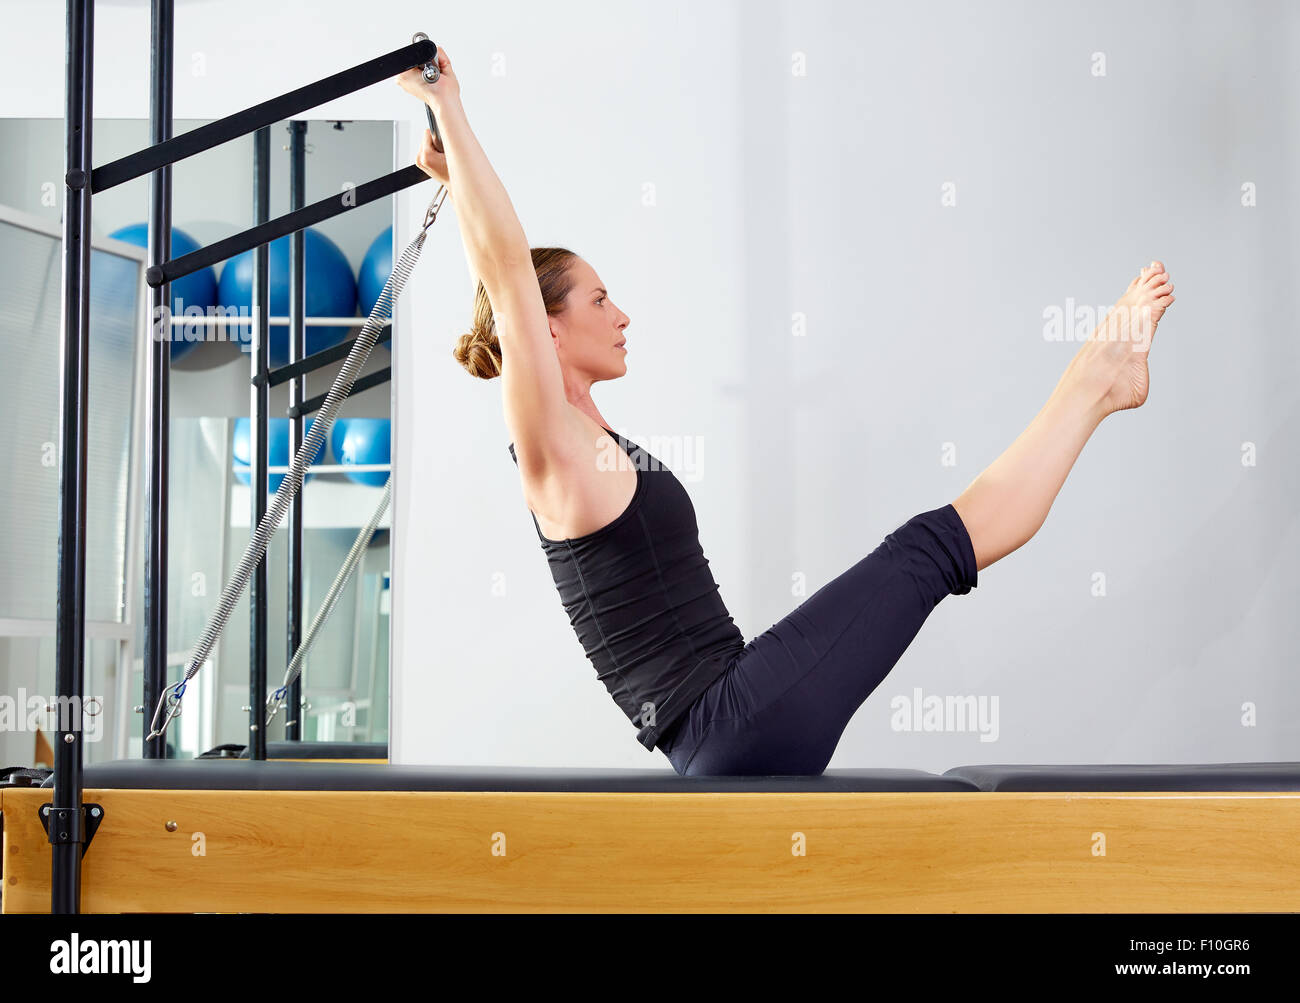 Pilates woman in reformer teaser exercise at gym indoor - Stock Image